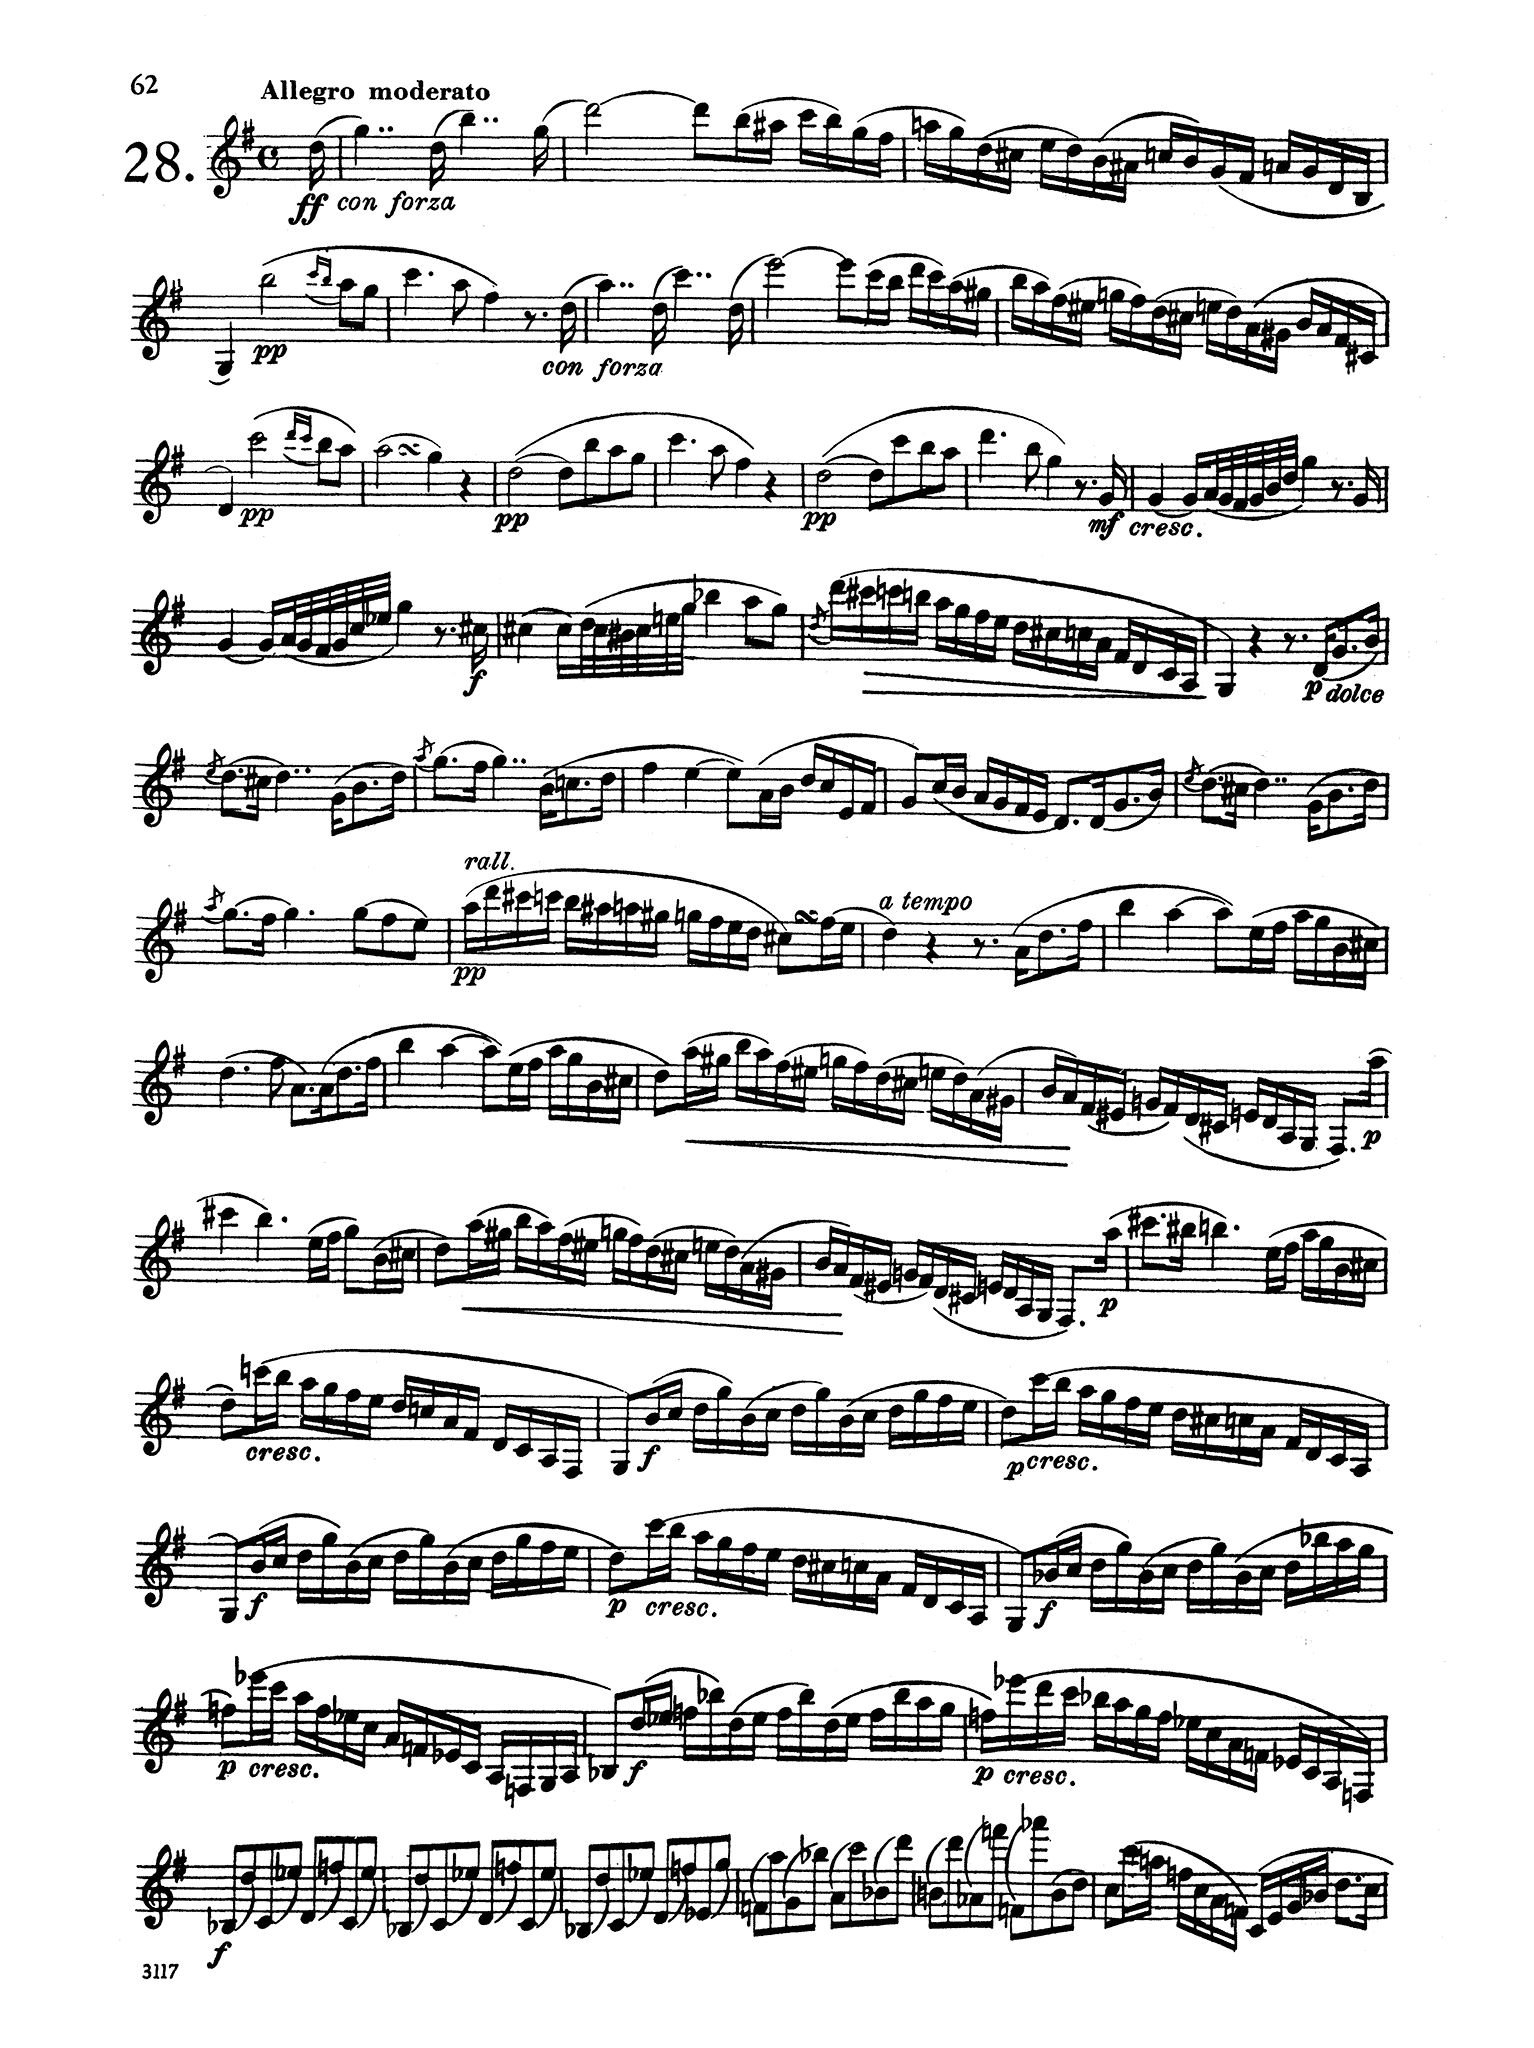 30 Caprices for Clarinet Page 62